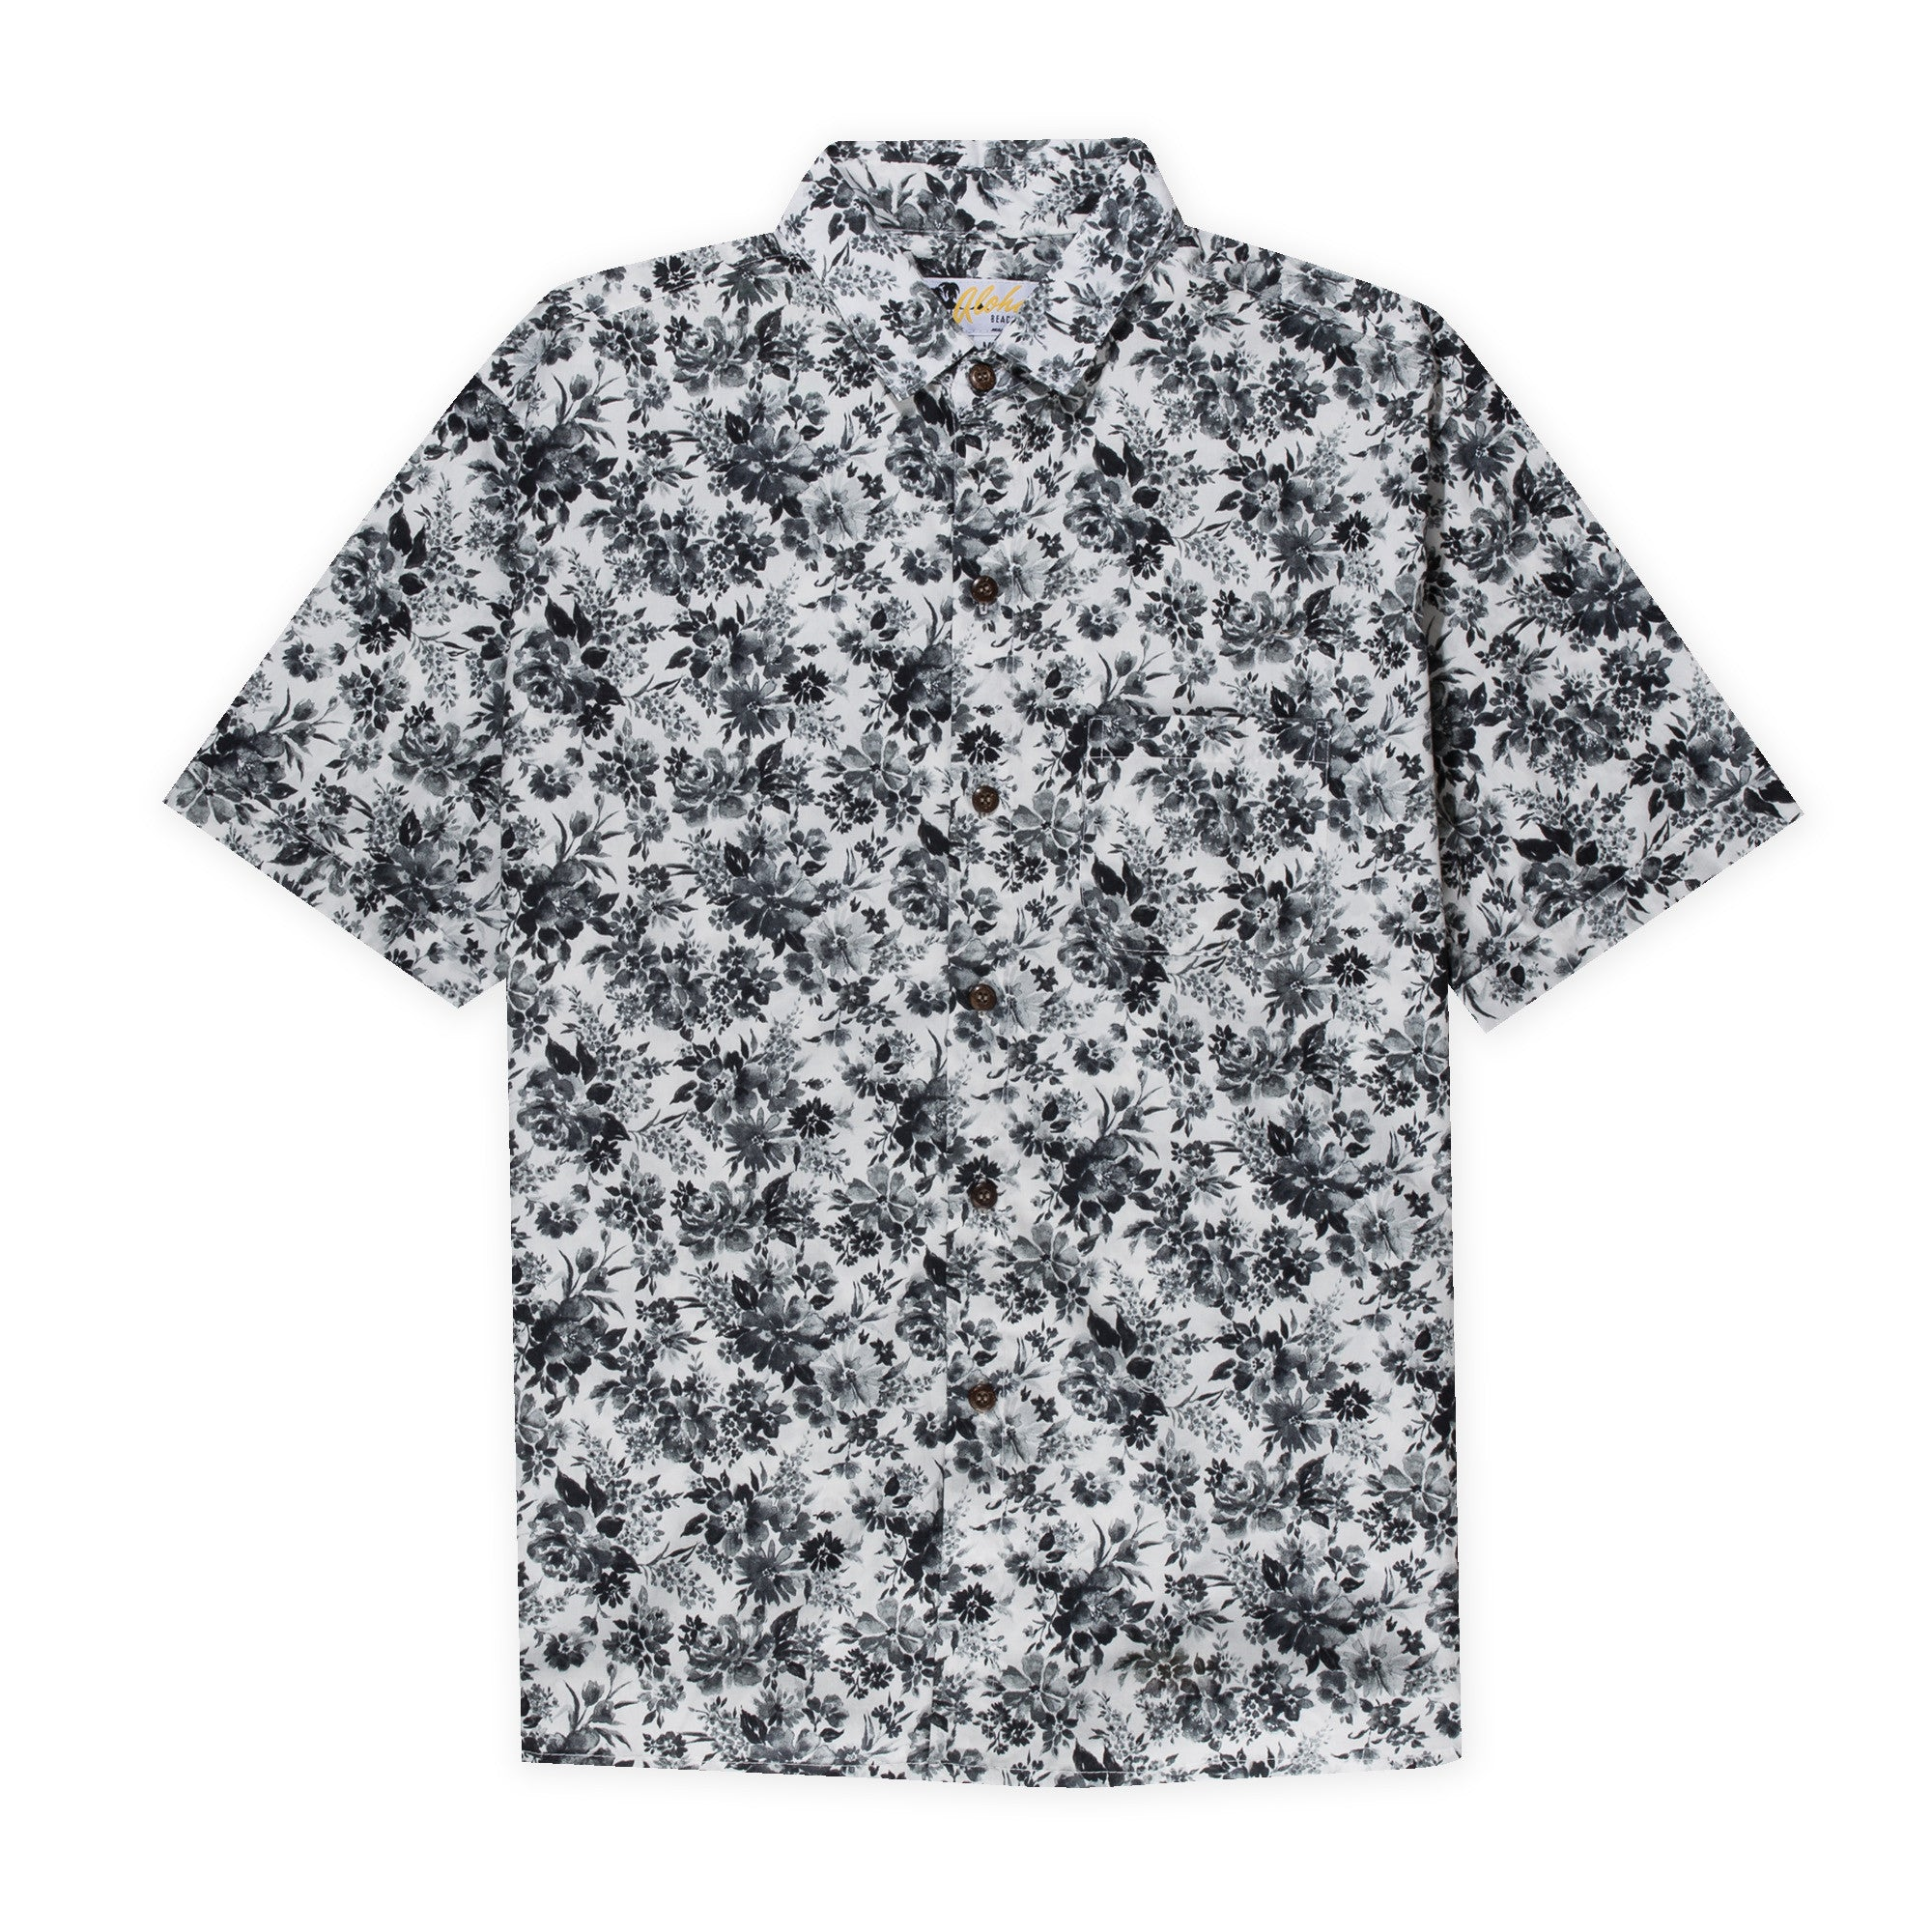 Aloha Beach Club - Tantalas Black Short Sleeve Aloha Shirt - Aloha Beach Club